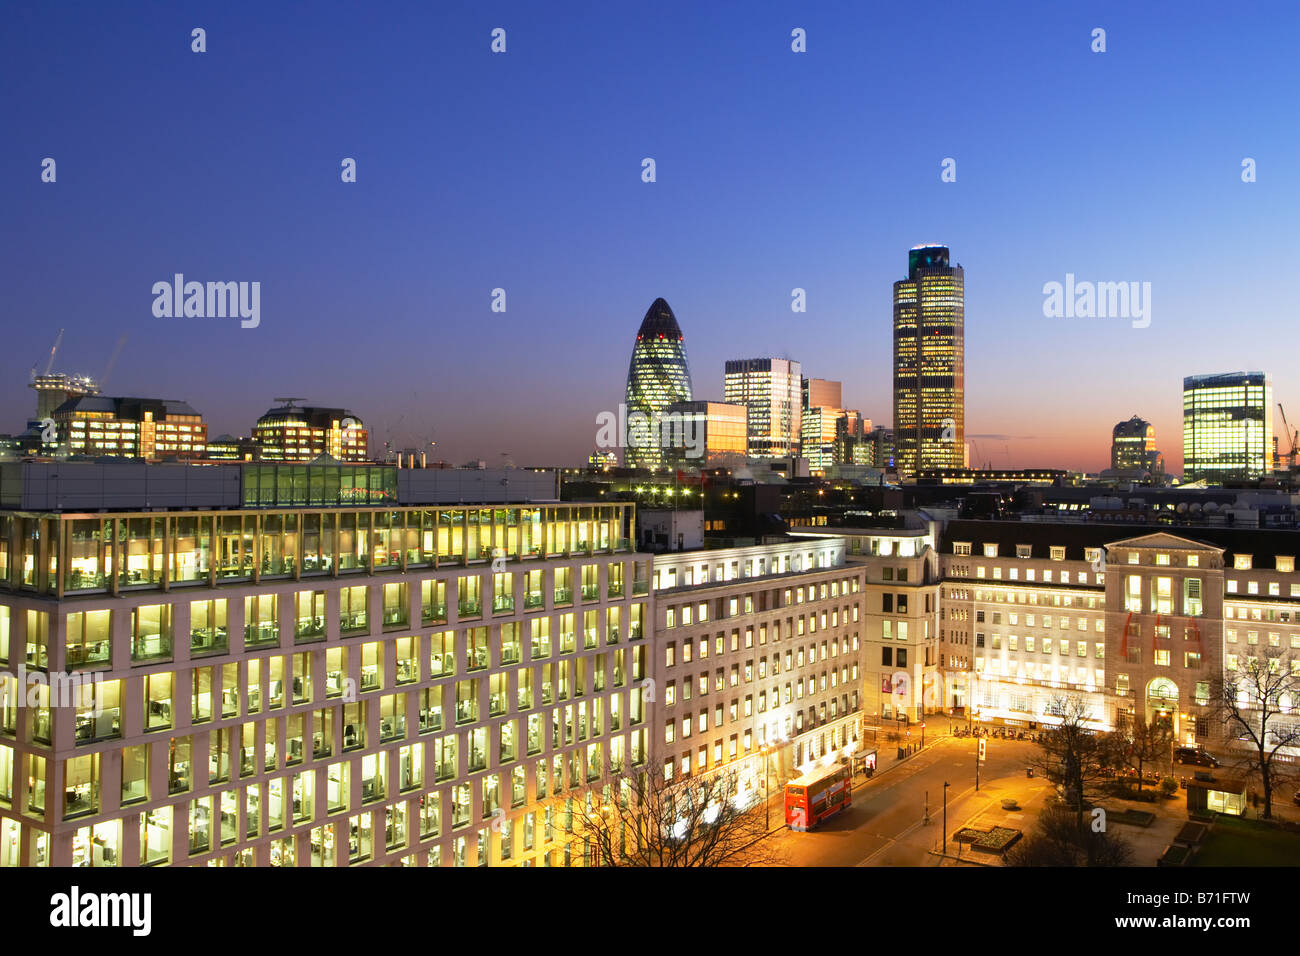 Night shot of Nat West Tower Gherkin and London skyline London England - Stock Image